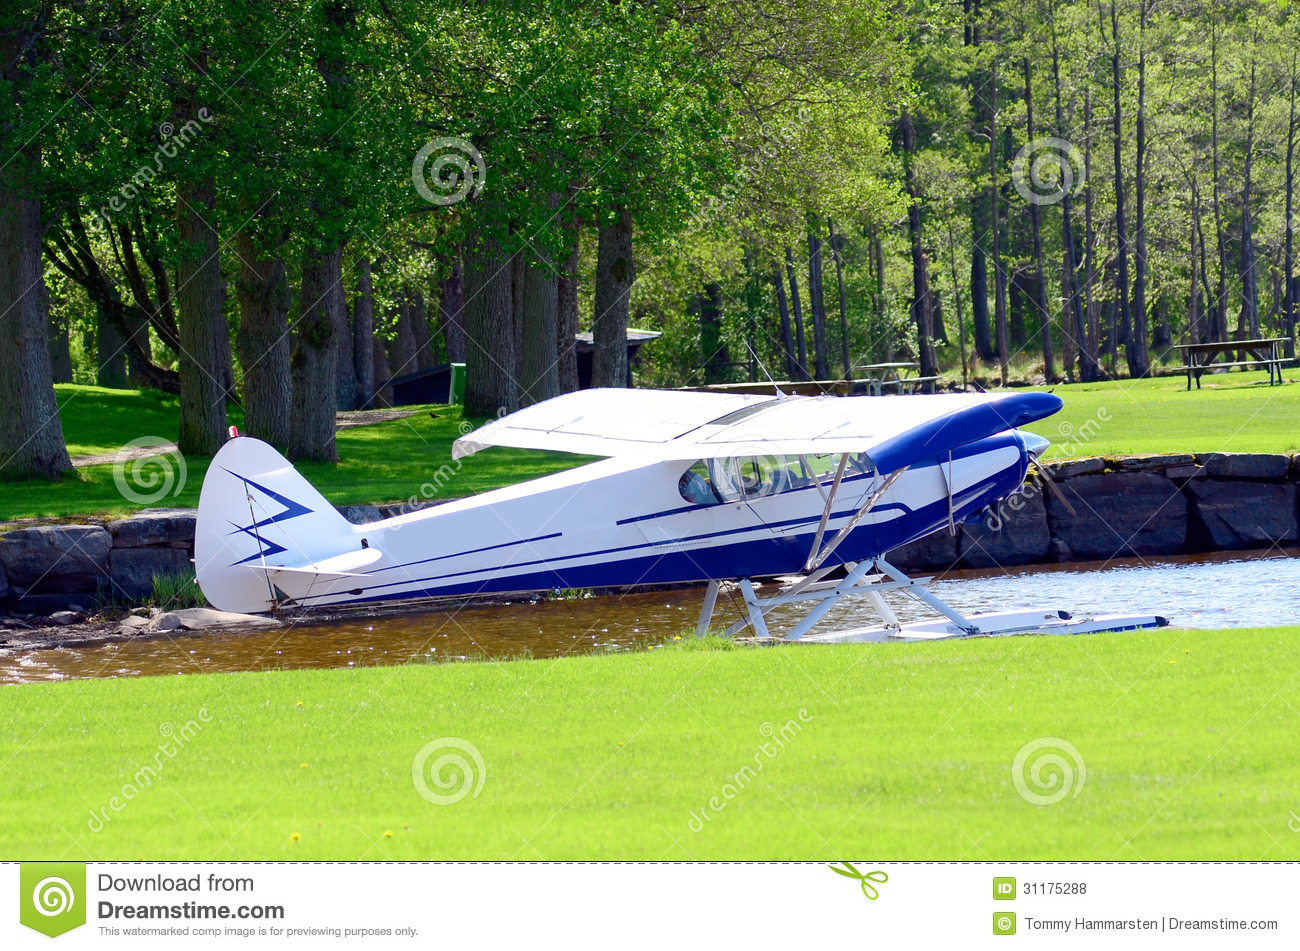 Aircraft Seaplane Royalty Free Stock Photos   Image  31175288